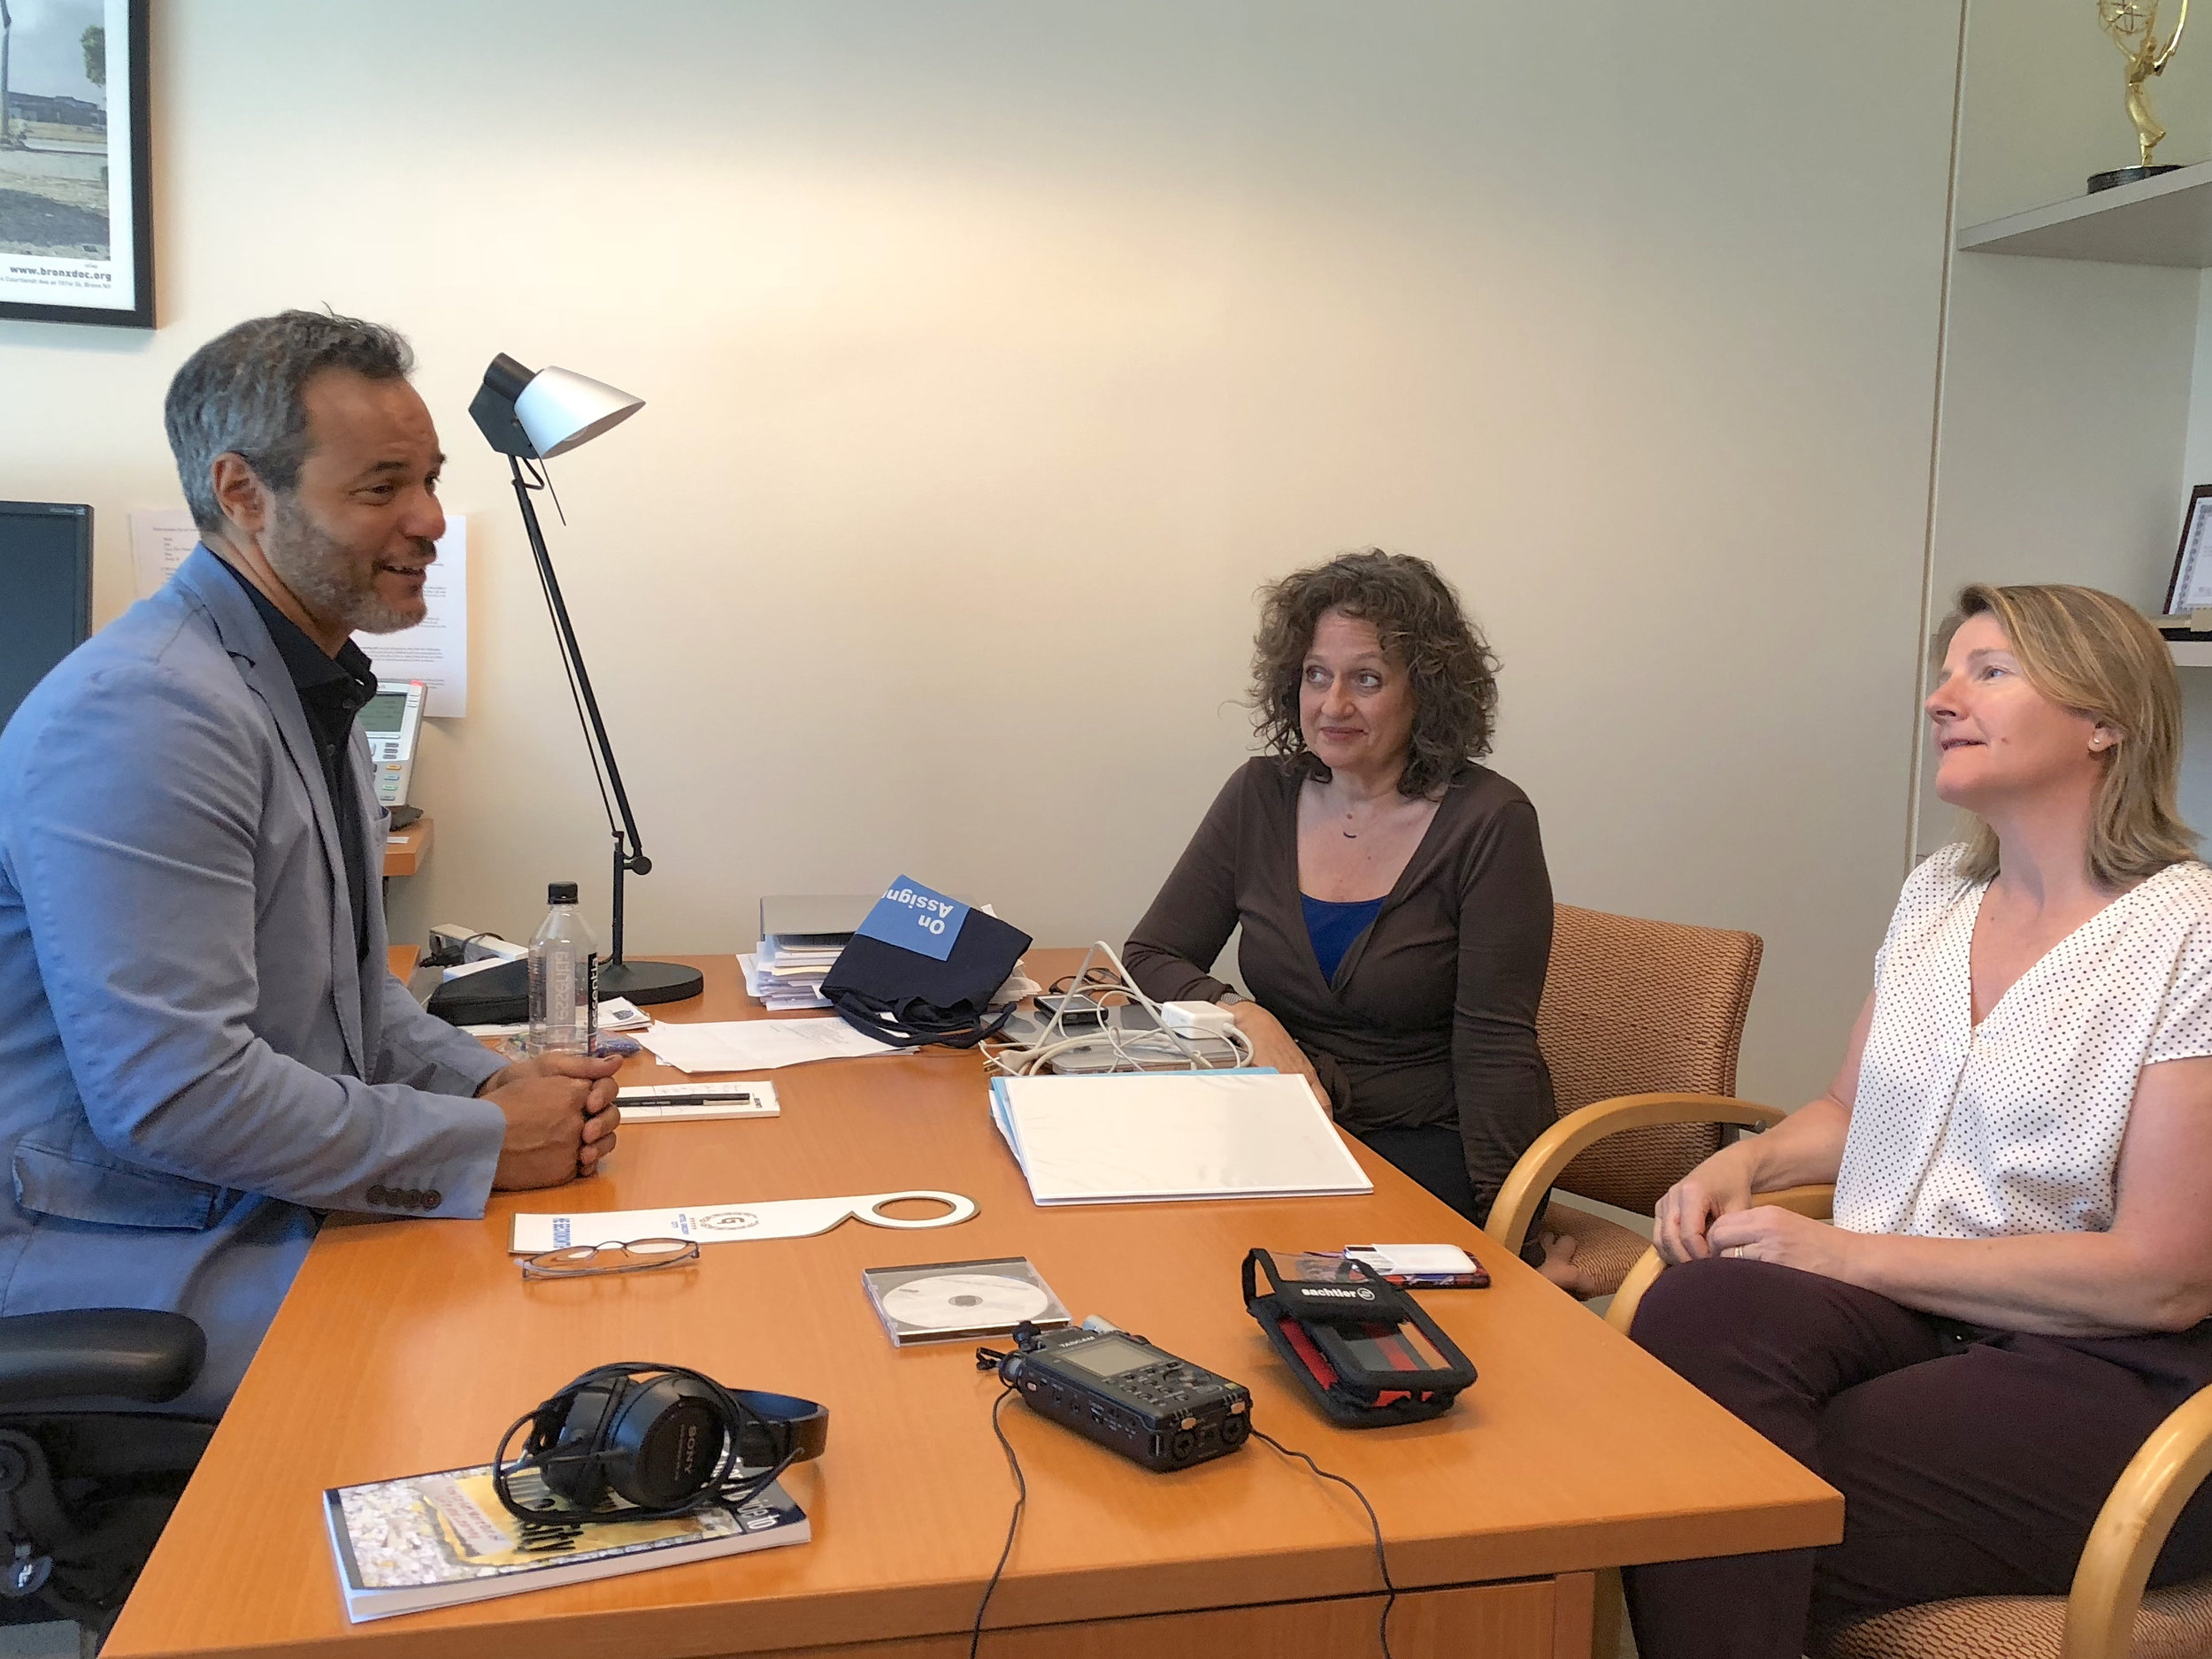 David Scott (l) talks to duPont-Columbia Awards Director Lisa R. Cohen (l) and Prizes Exec Director Abi Wright (r) in his HBO office.